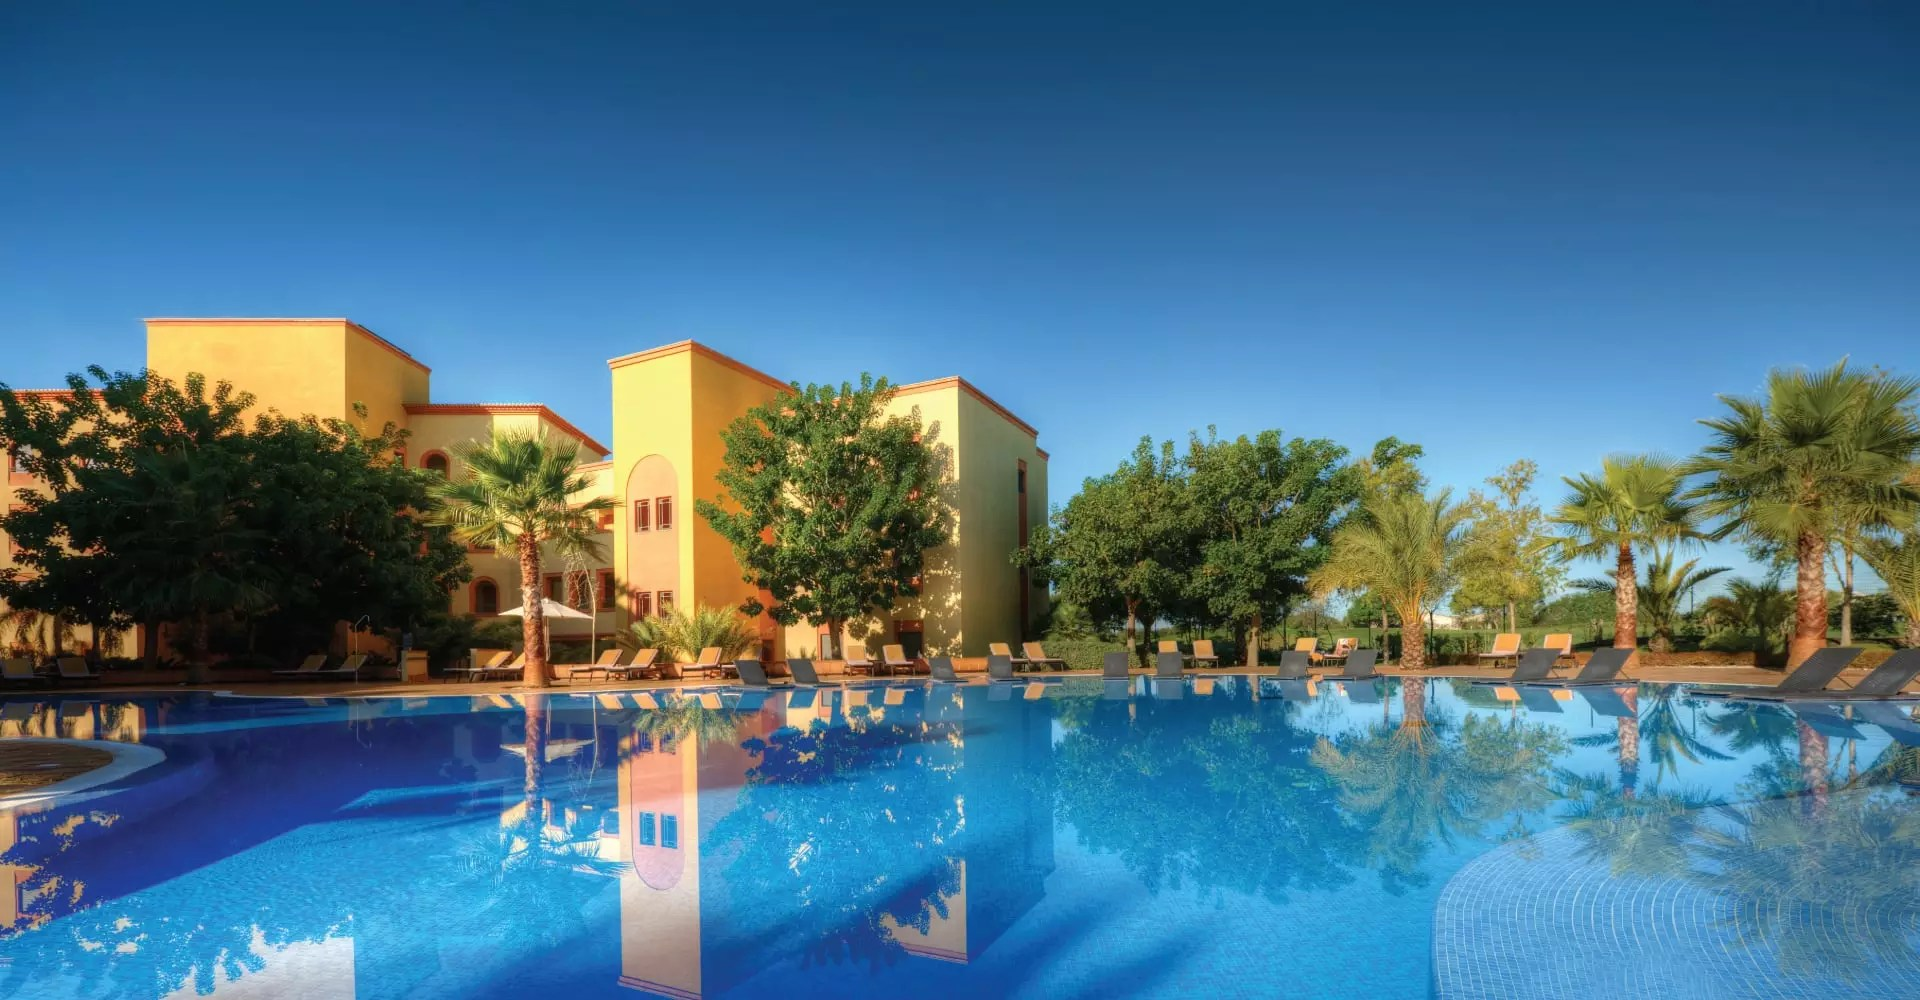 Tivoli Lagos Algarve The Residences At Victoria By Tivoli 5 Star Aparthotel In Vilamoura